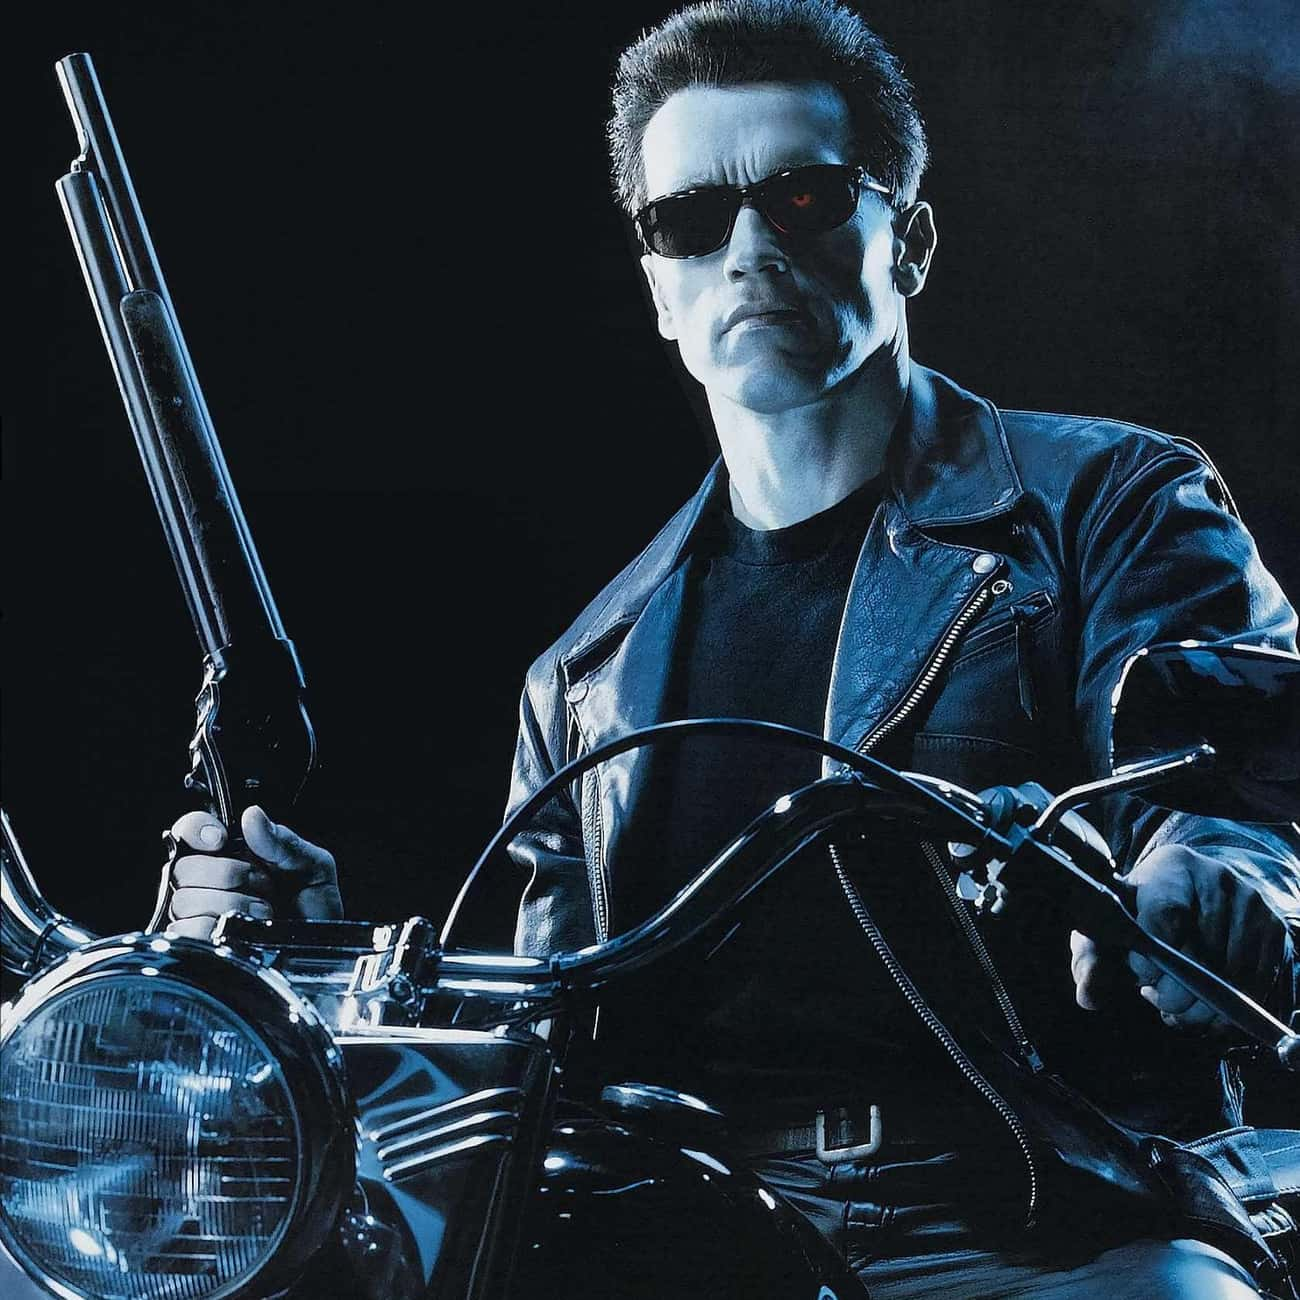 Terminator 2: Judgment Day is listed (or ranked) 2 on the list Arnold Schwarzenegger Time Travel Roles